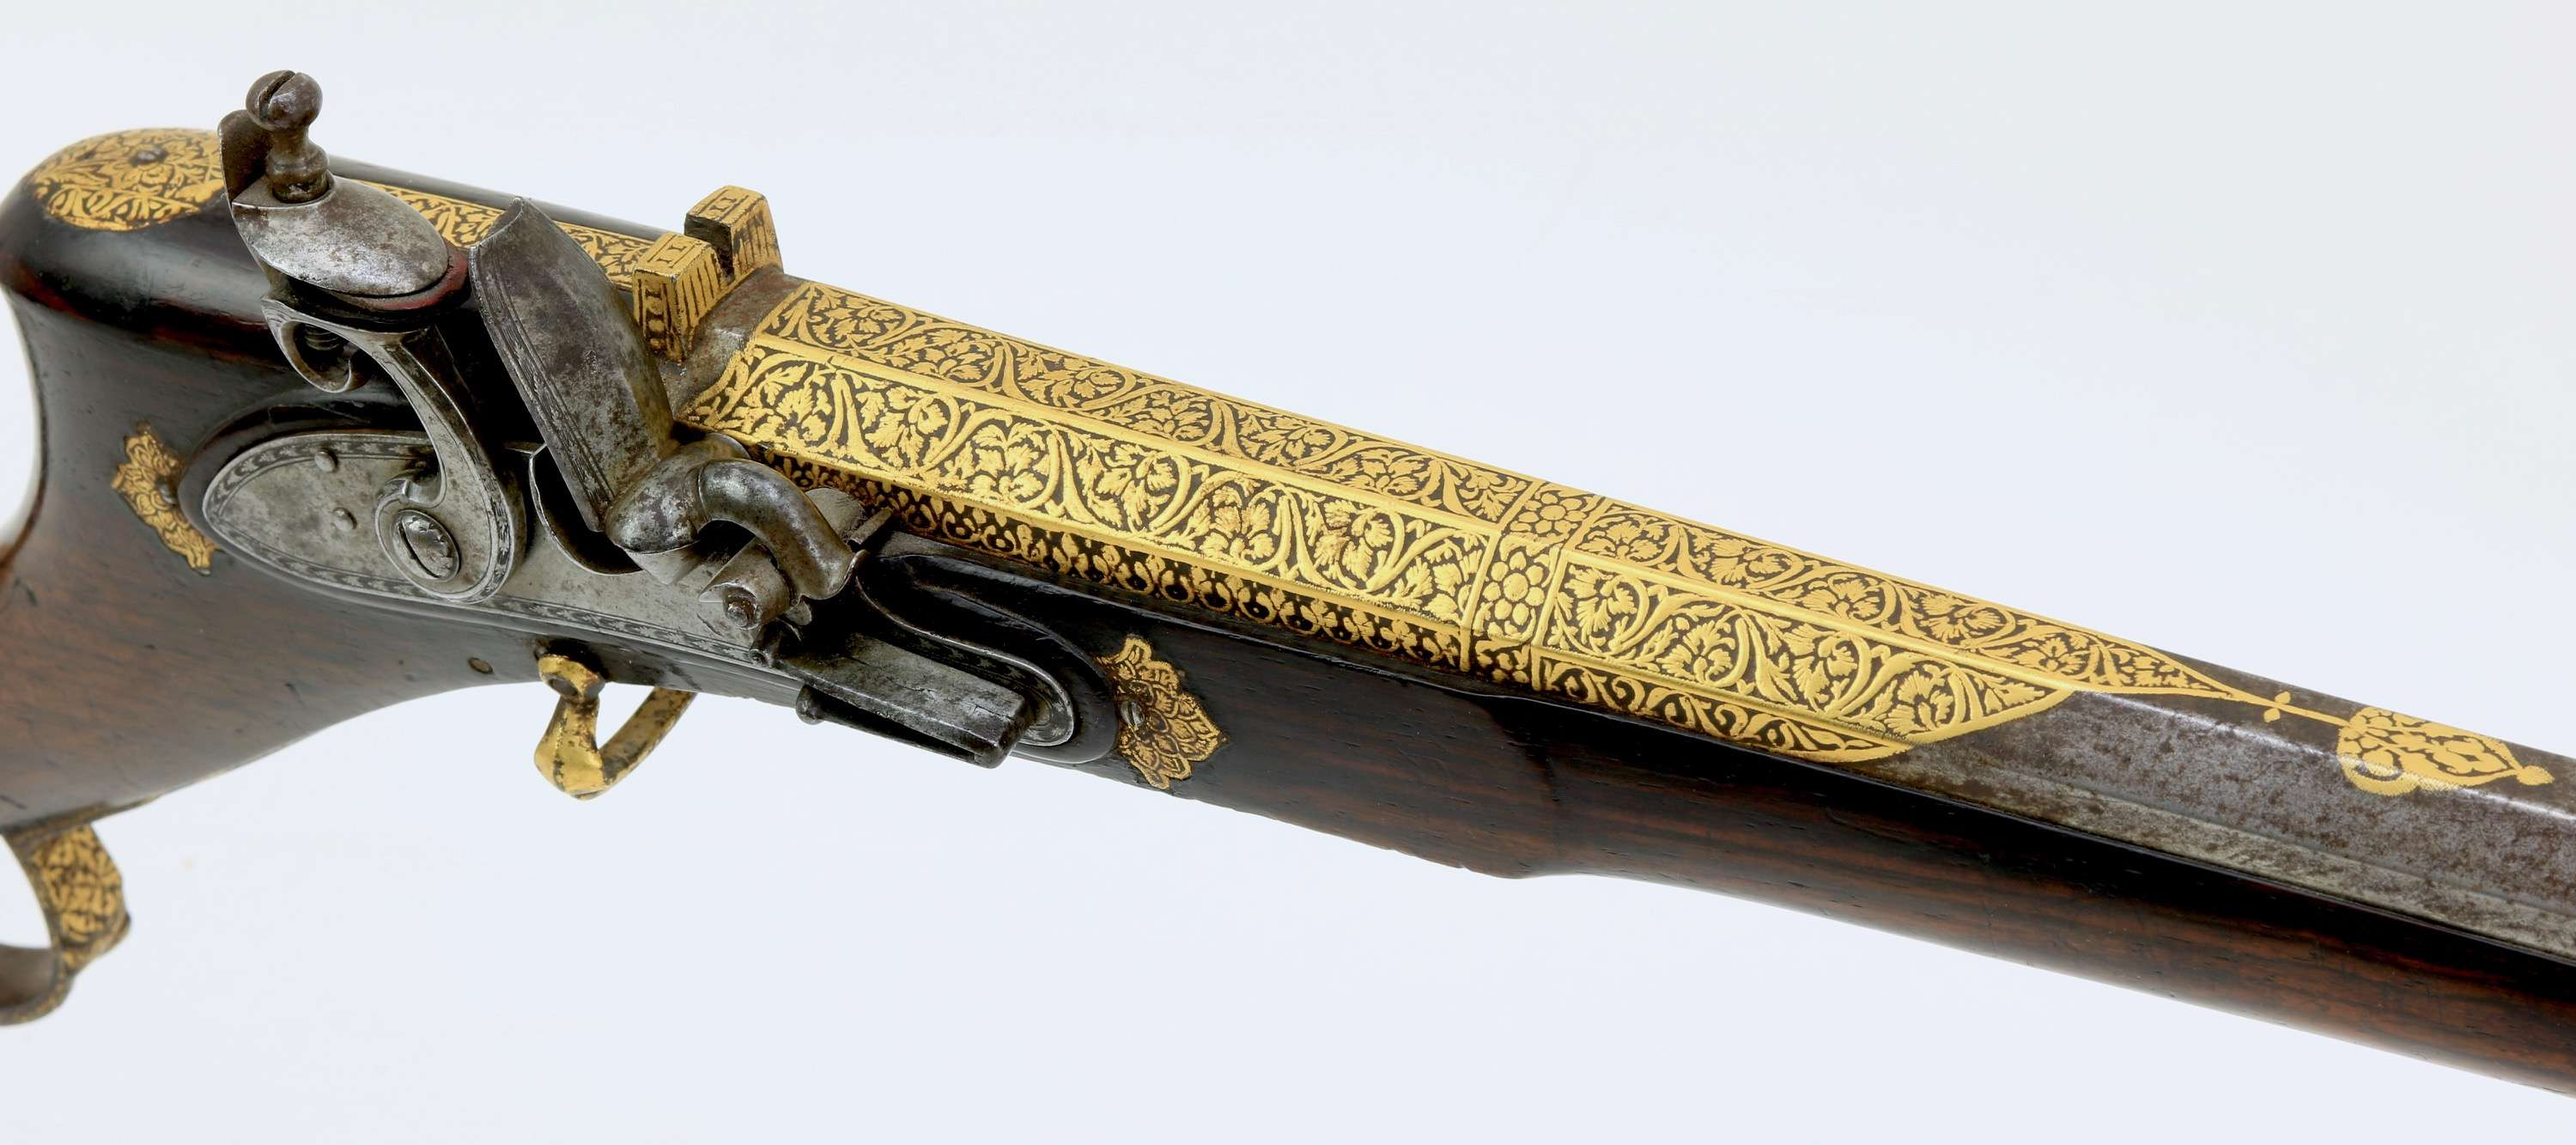 Fine flintlock musket from Sindh